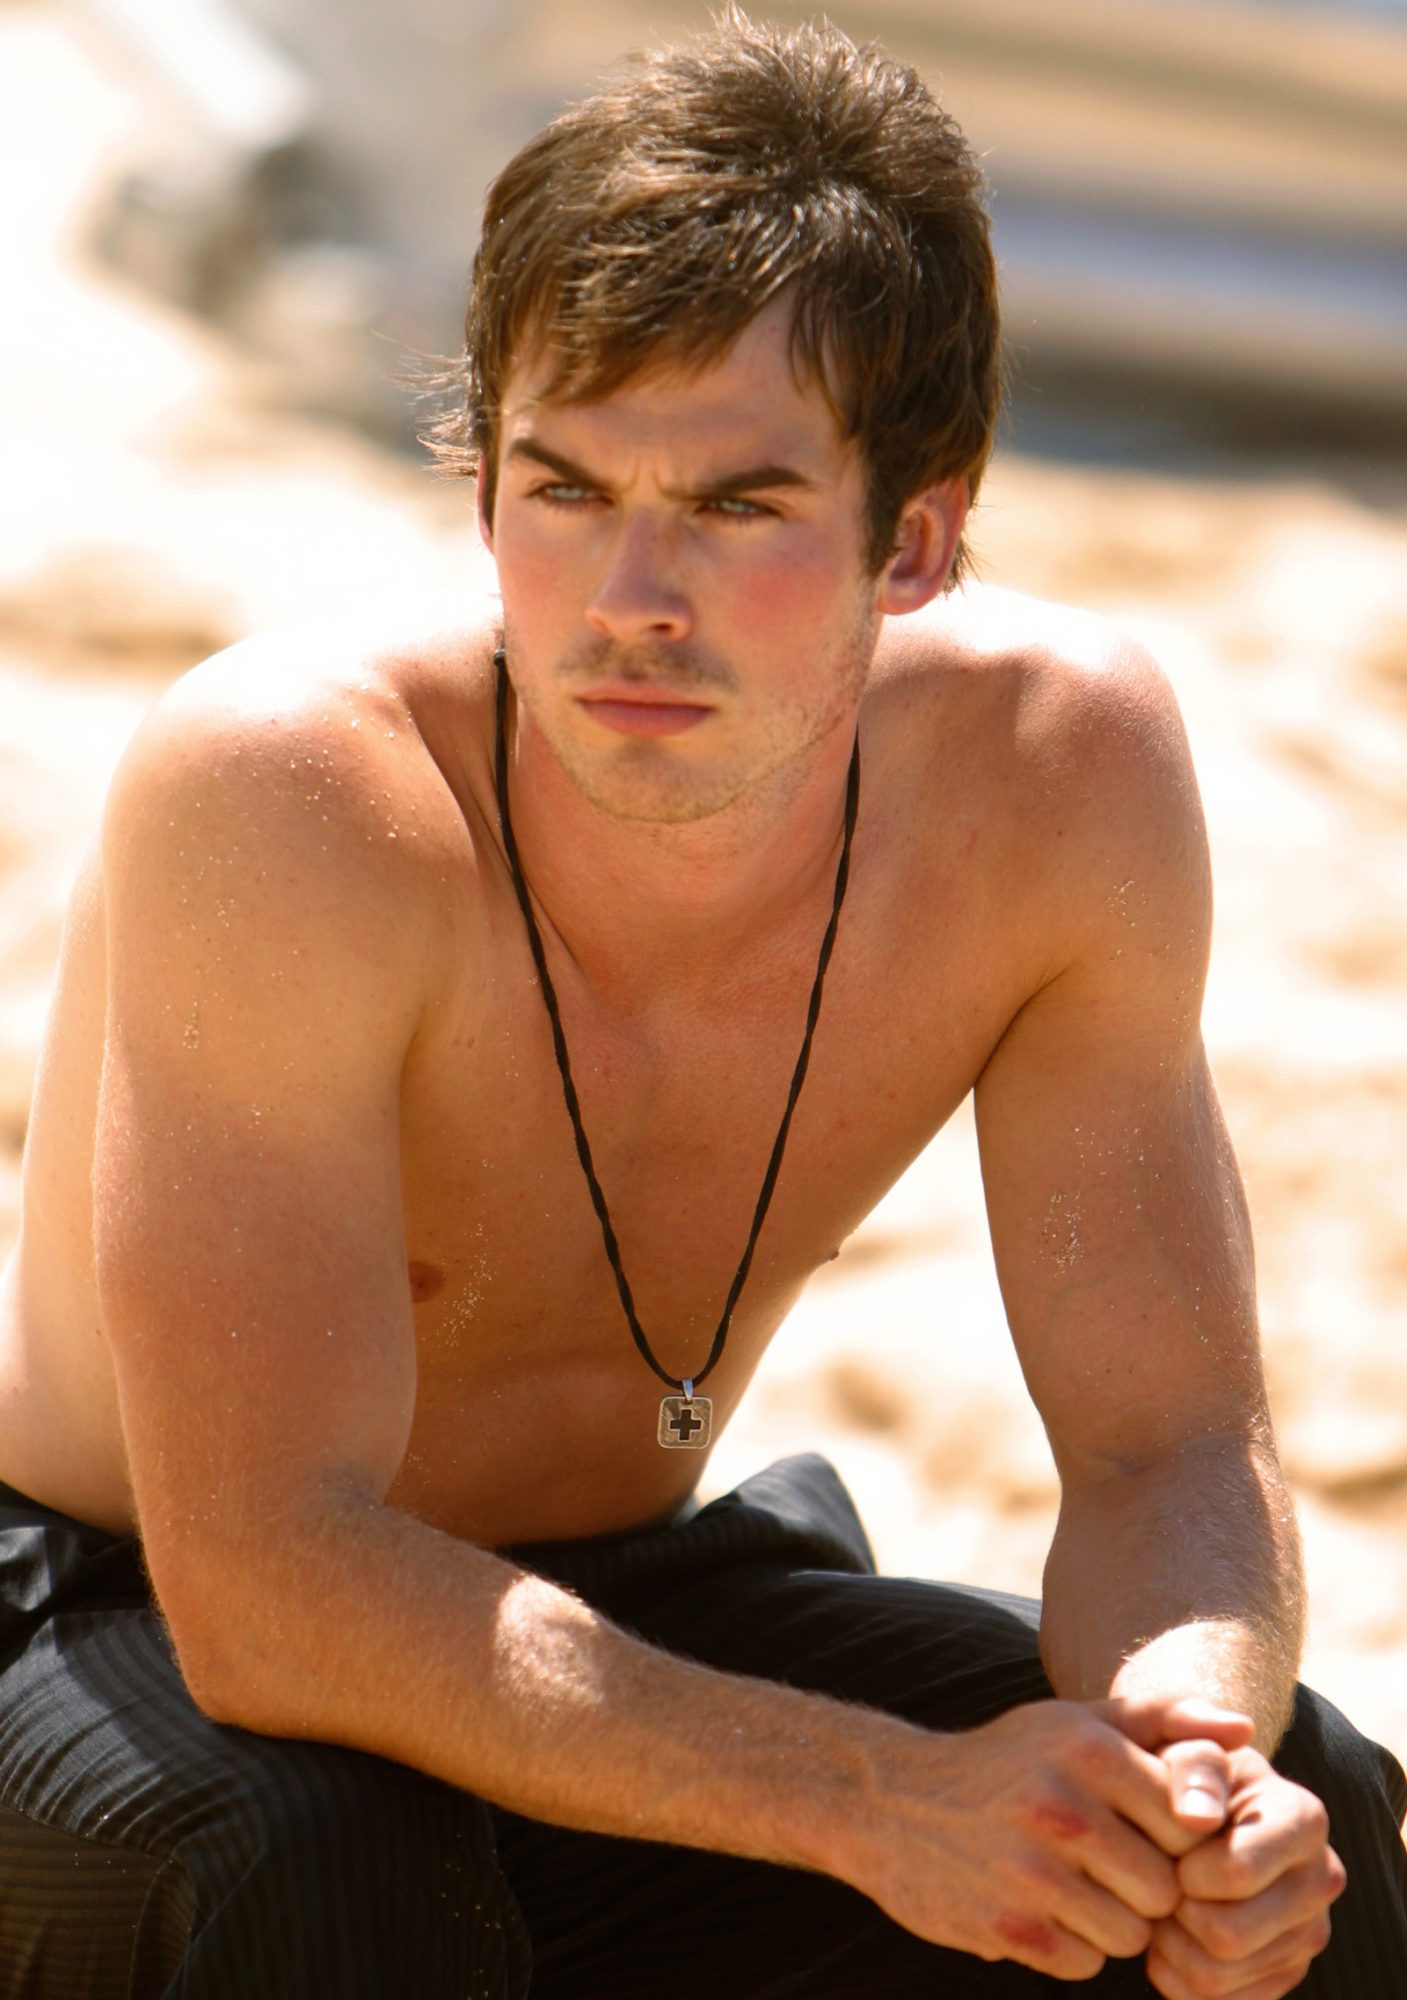 Ian Somerhalder's Hottest Photos for Your Viewing Pleasure ...